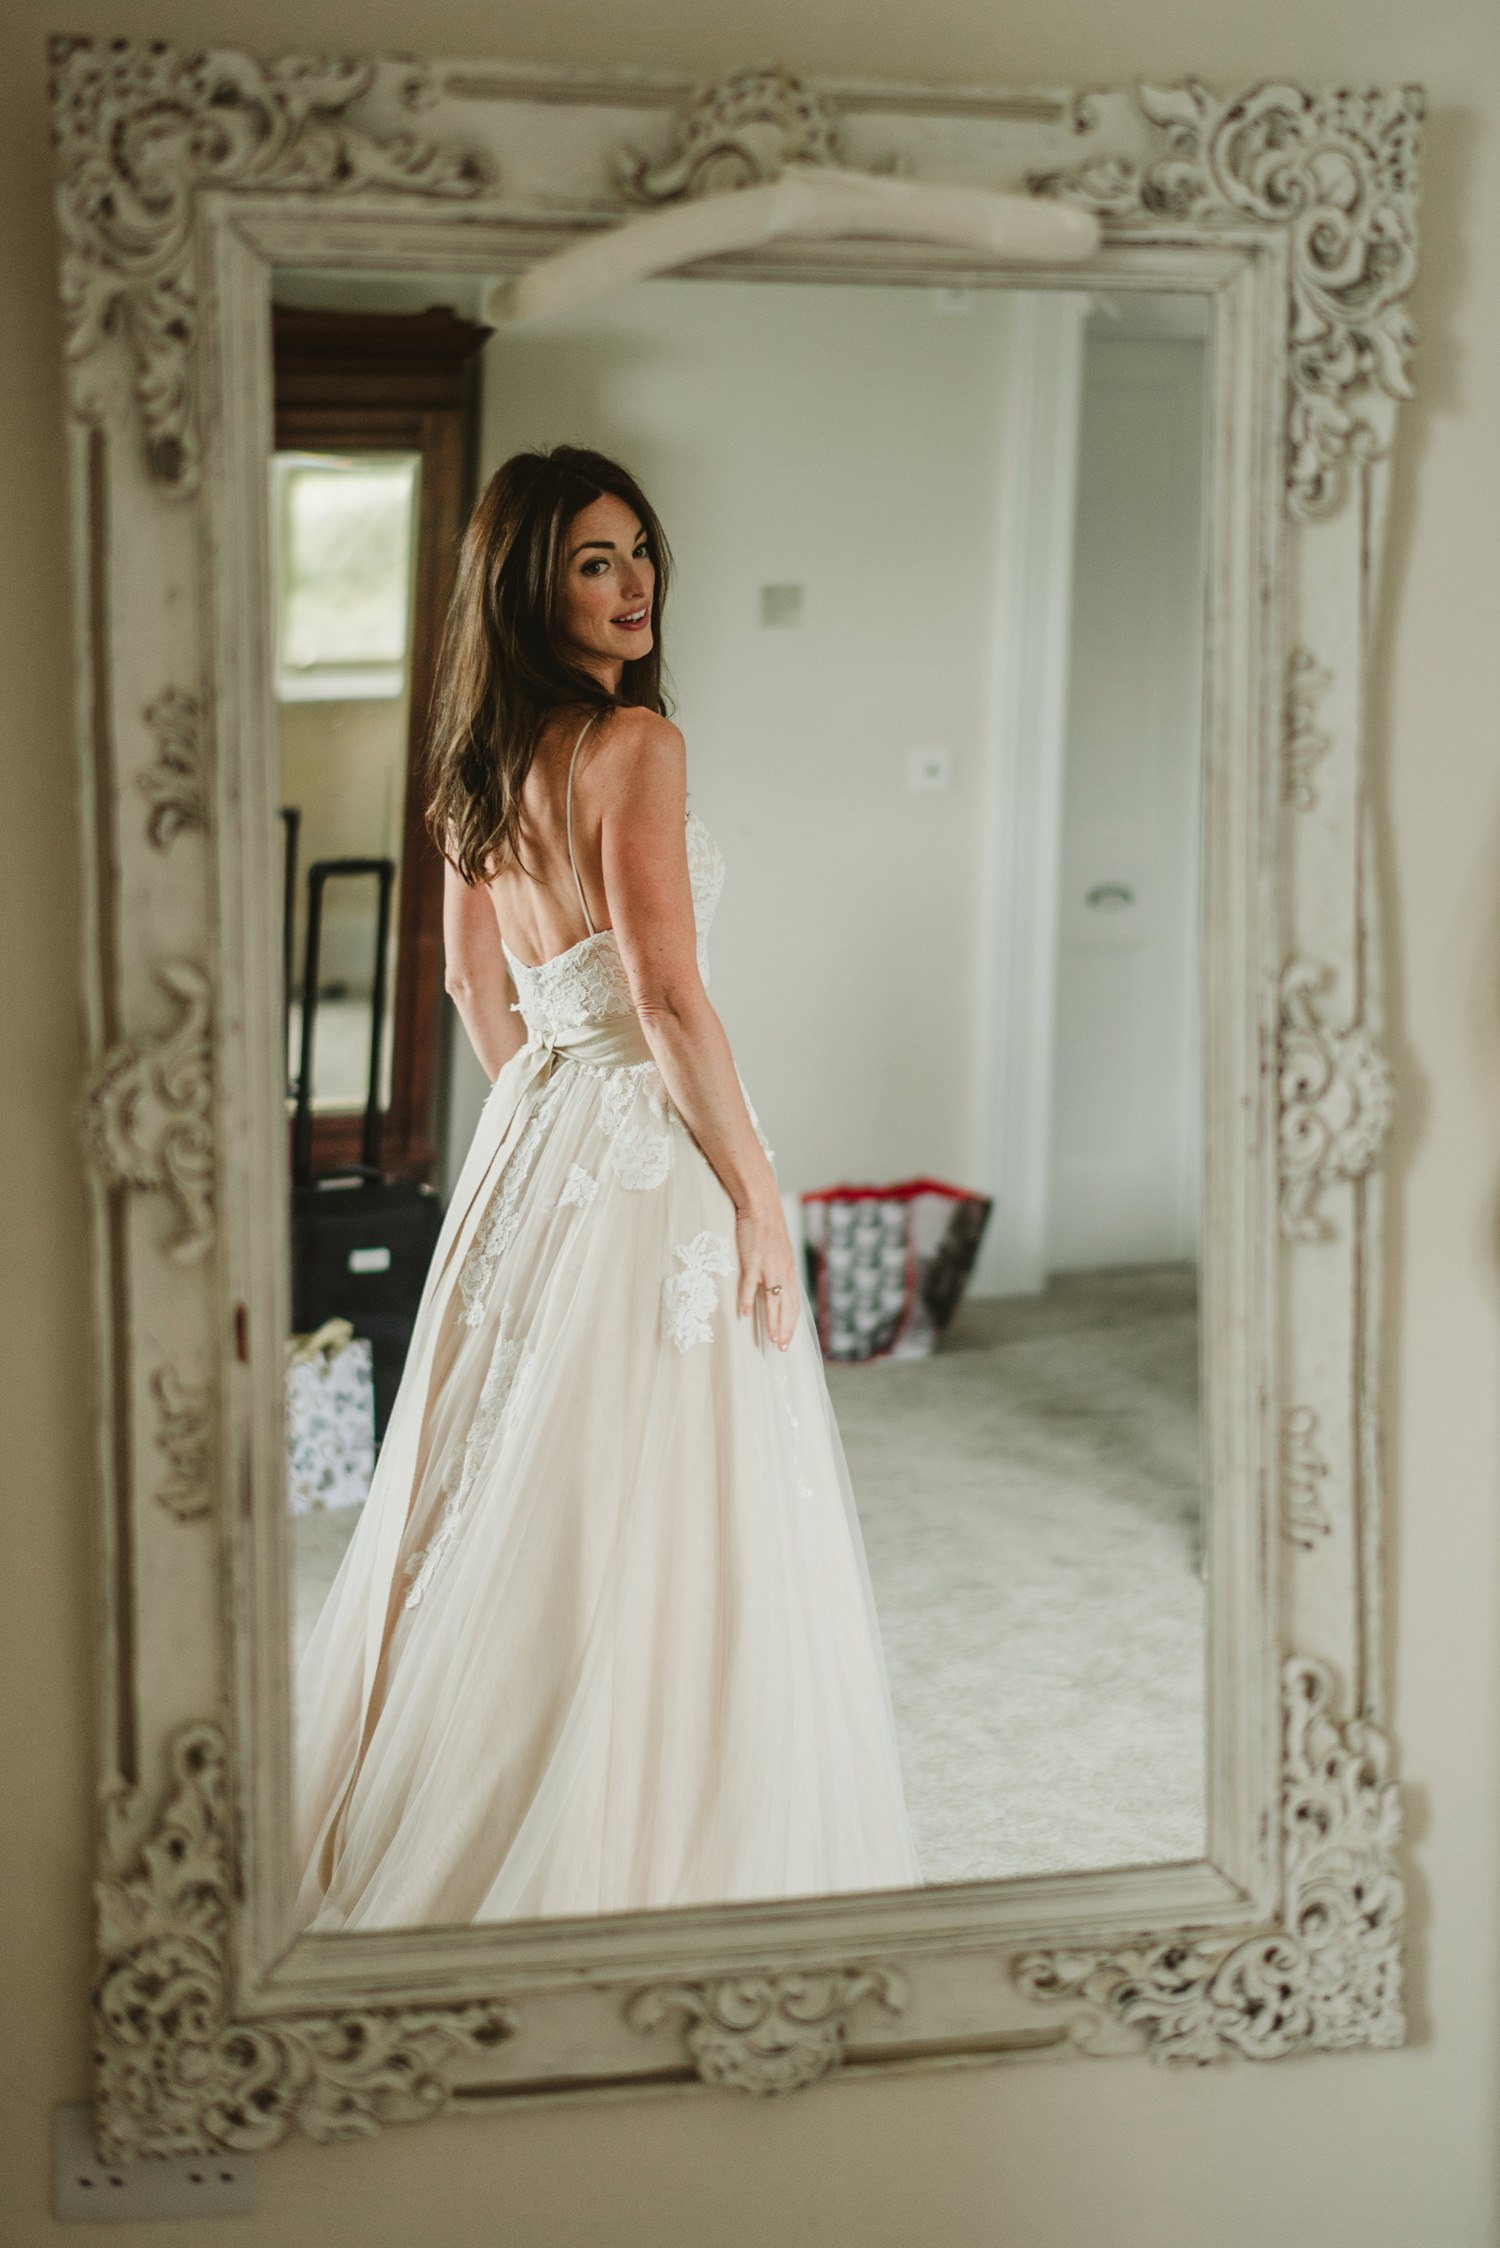 bride checking dress in mirror